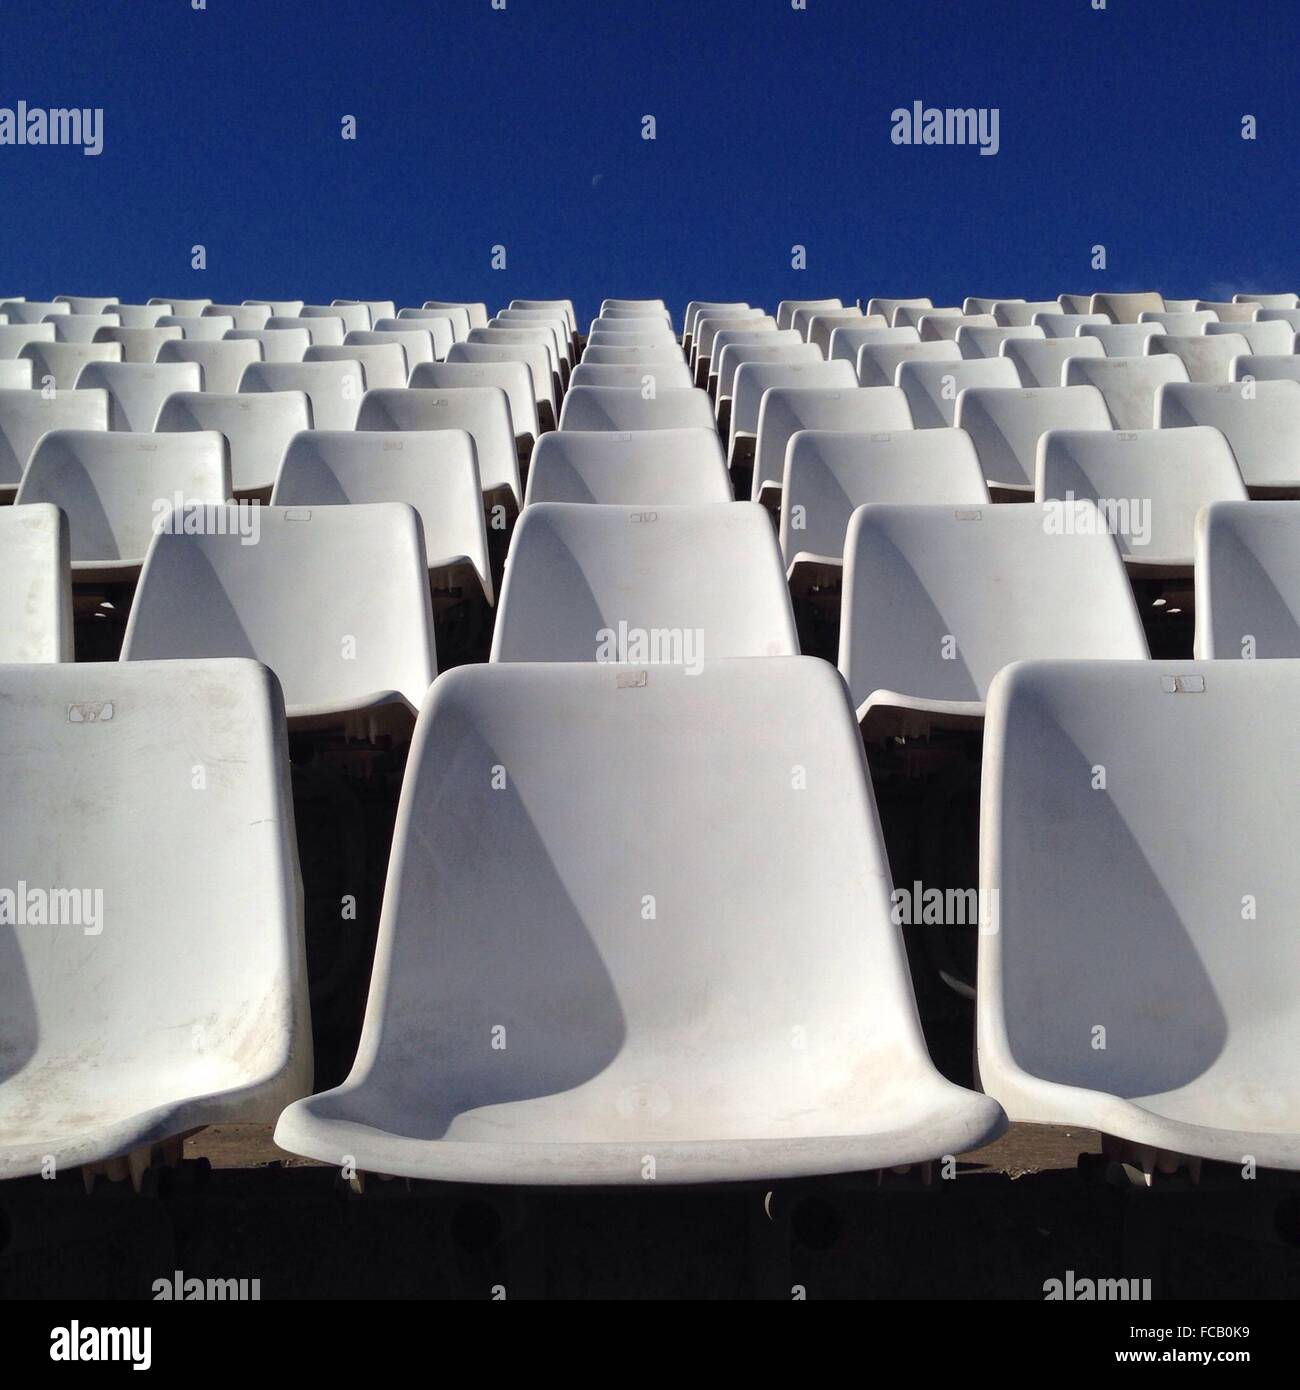 Rows Of Empty White Chairs - Stock Image